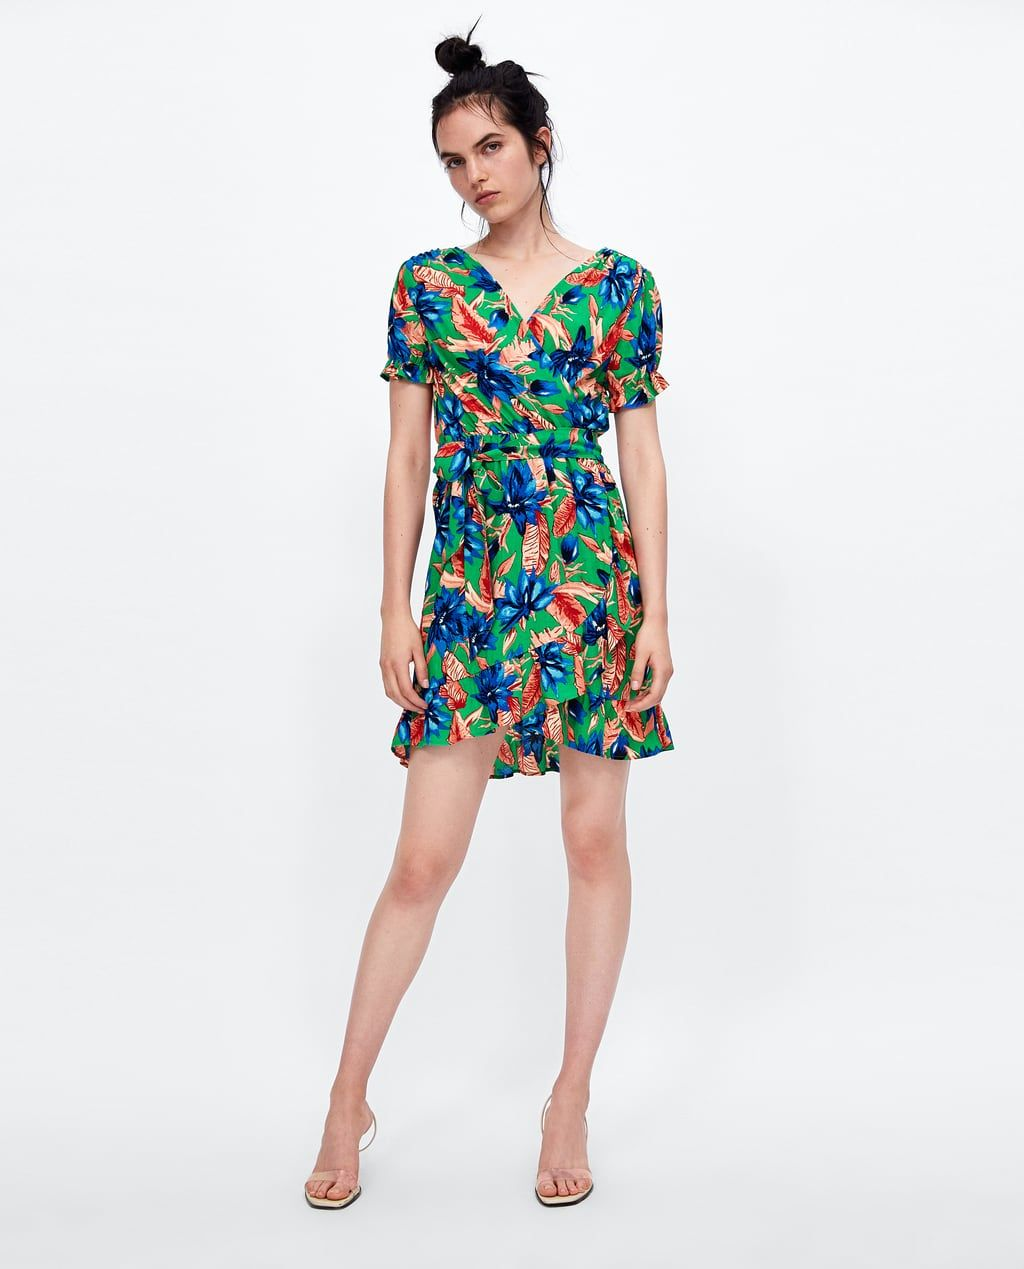 629cd787d98 Image 1 of CROSSOVER DRESS WITH FLORAL PRINT from Zara Zara Women, Yes To  The